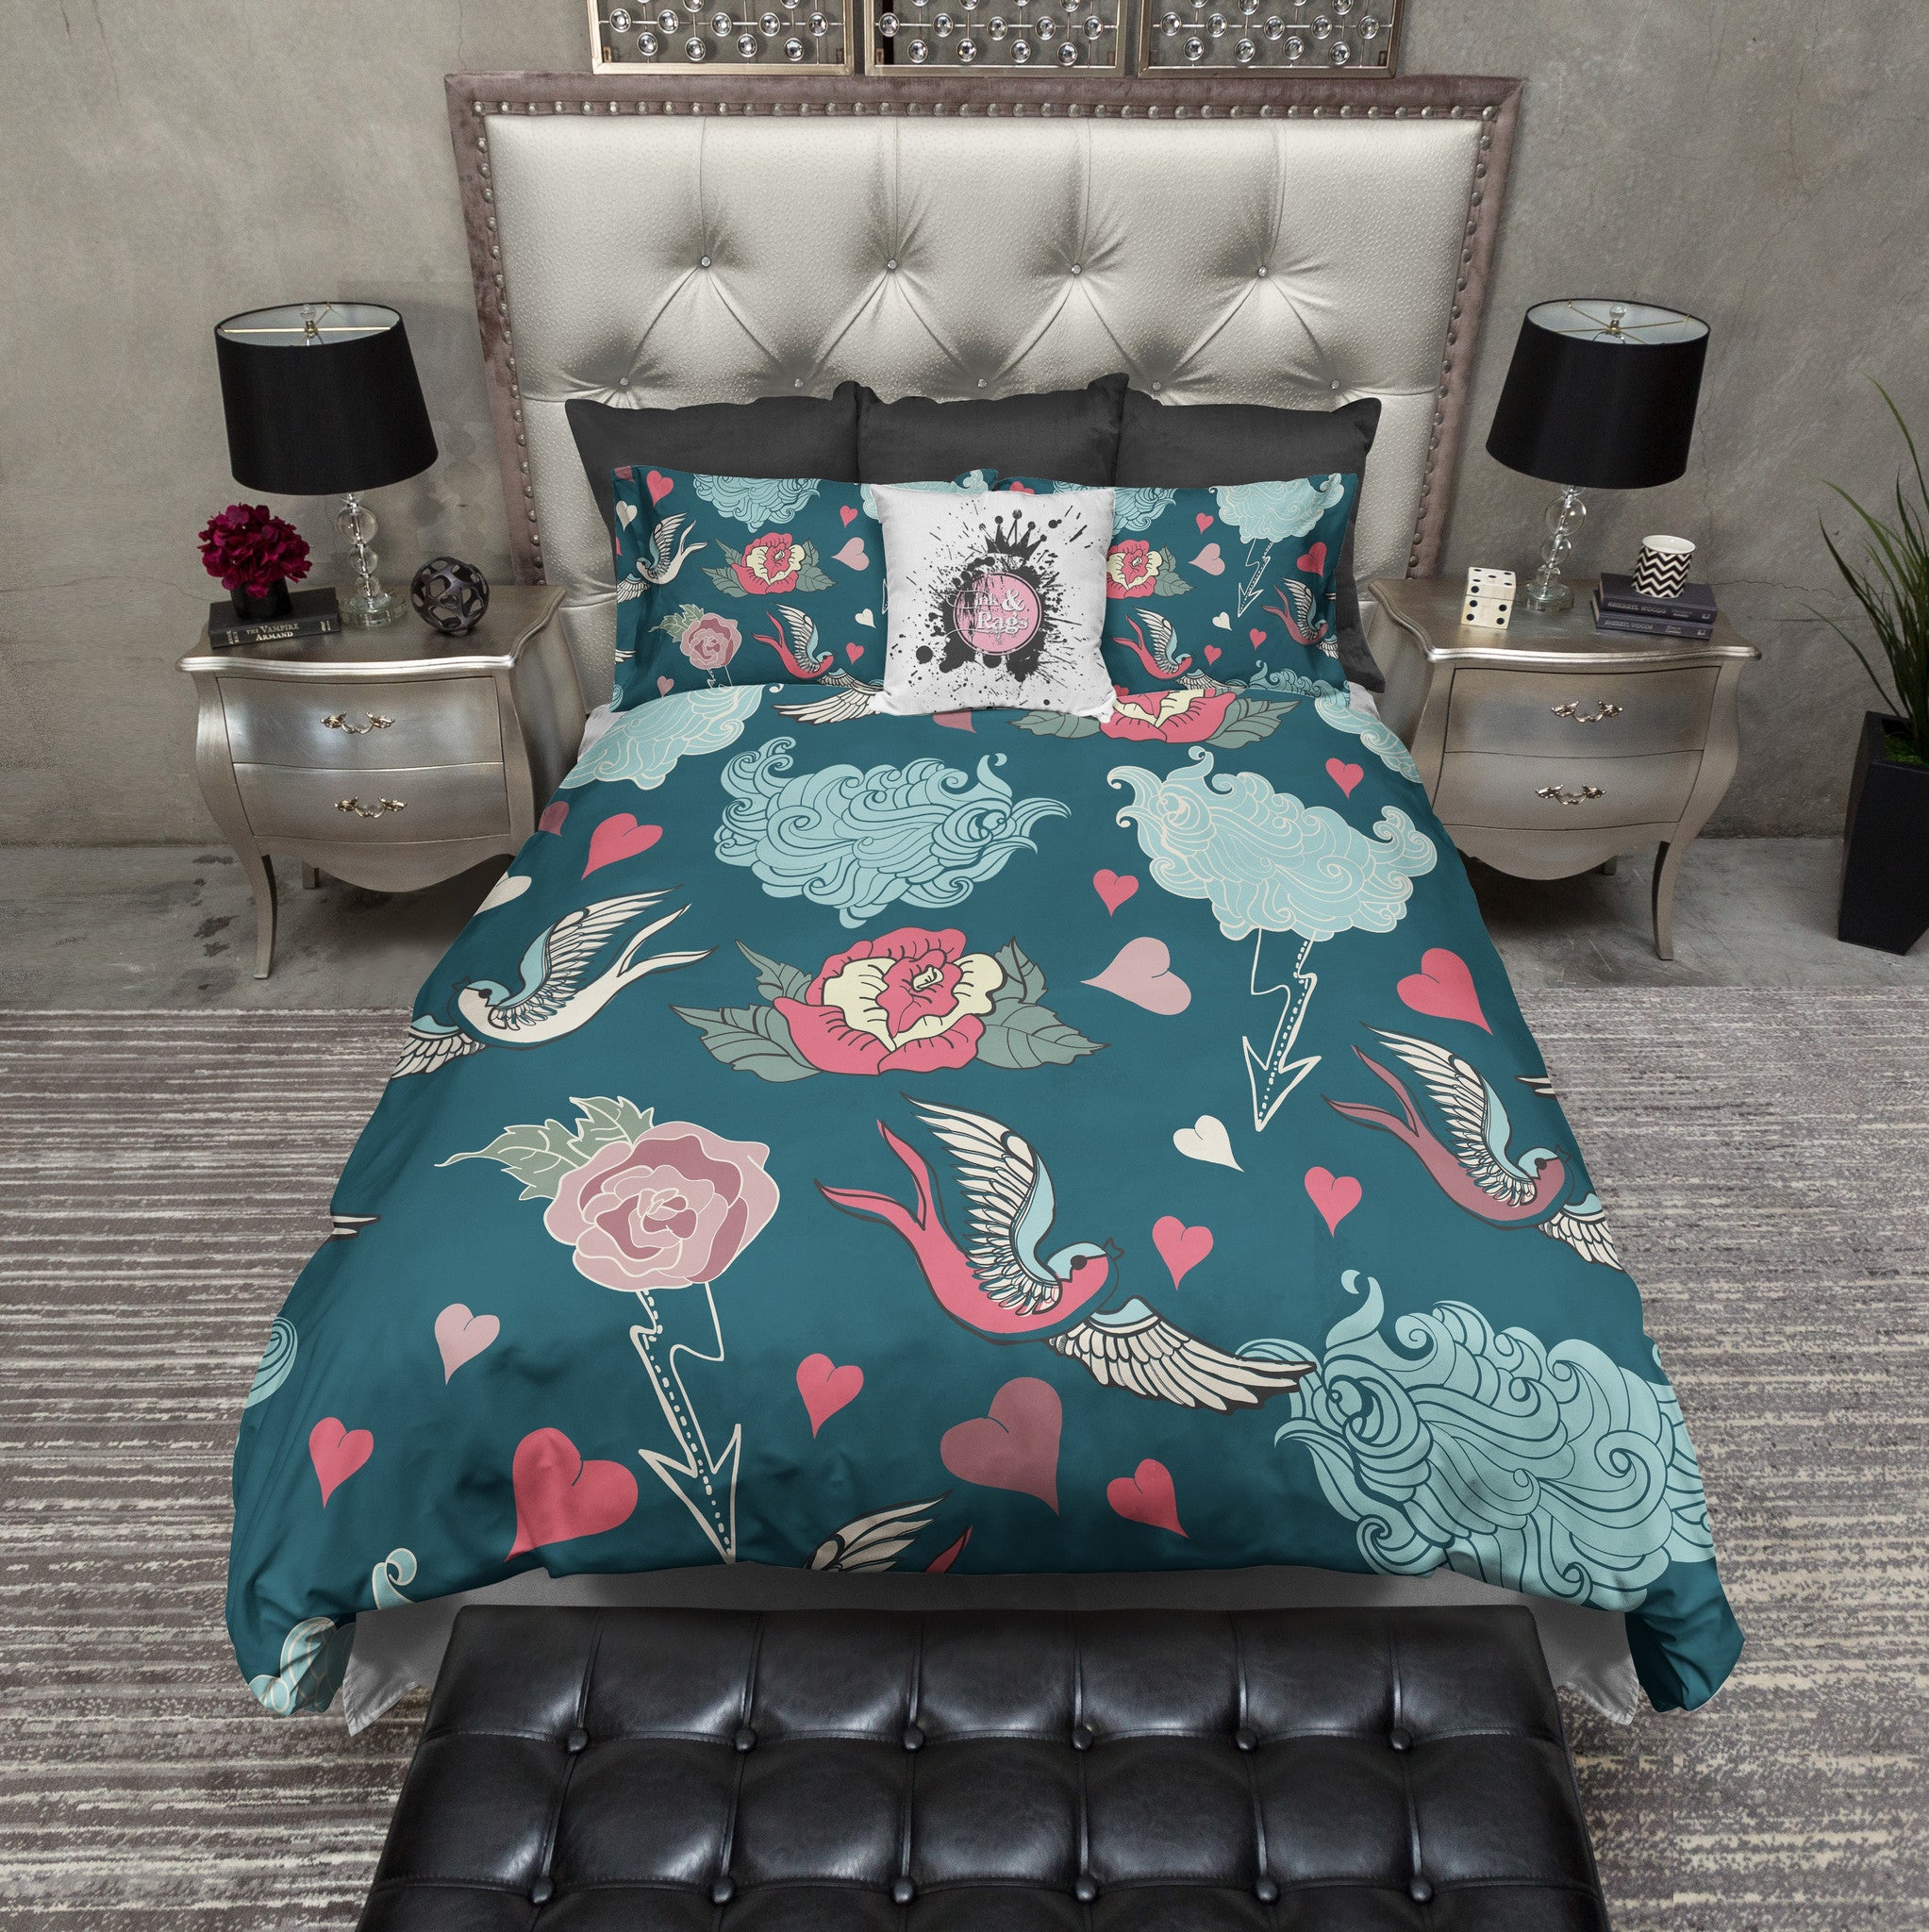 Light and Dark Teal Rockabilly Duvet Bedding Sets. Light and Dark Teal Rockabilly Duvet Bedding Sets   Ink and Rags